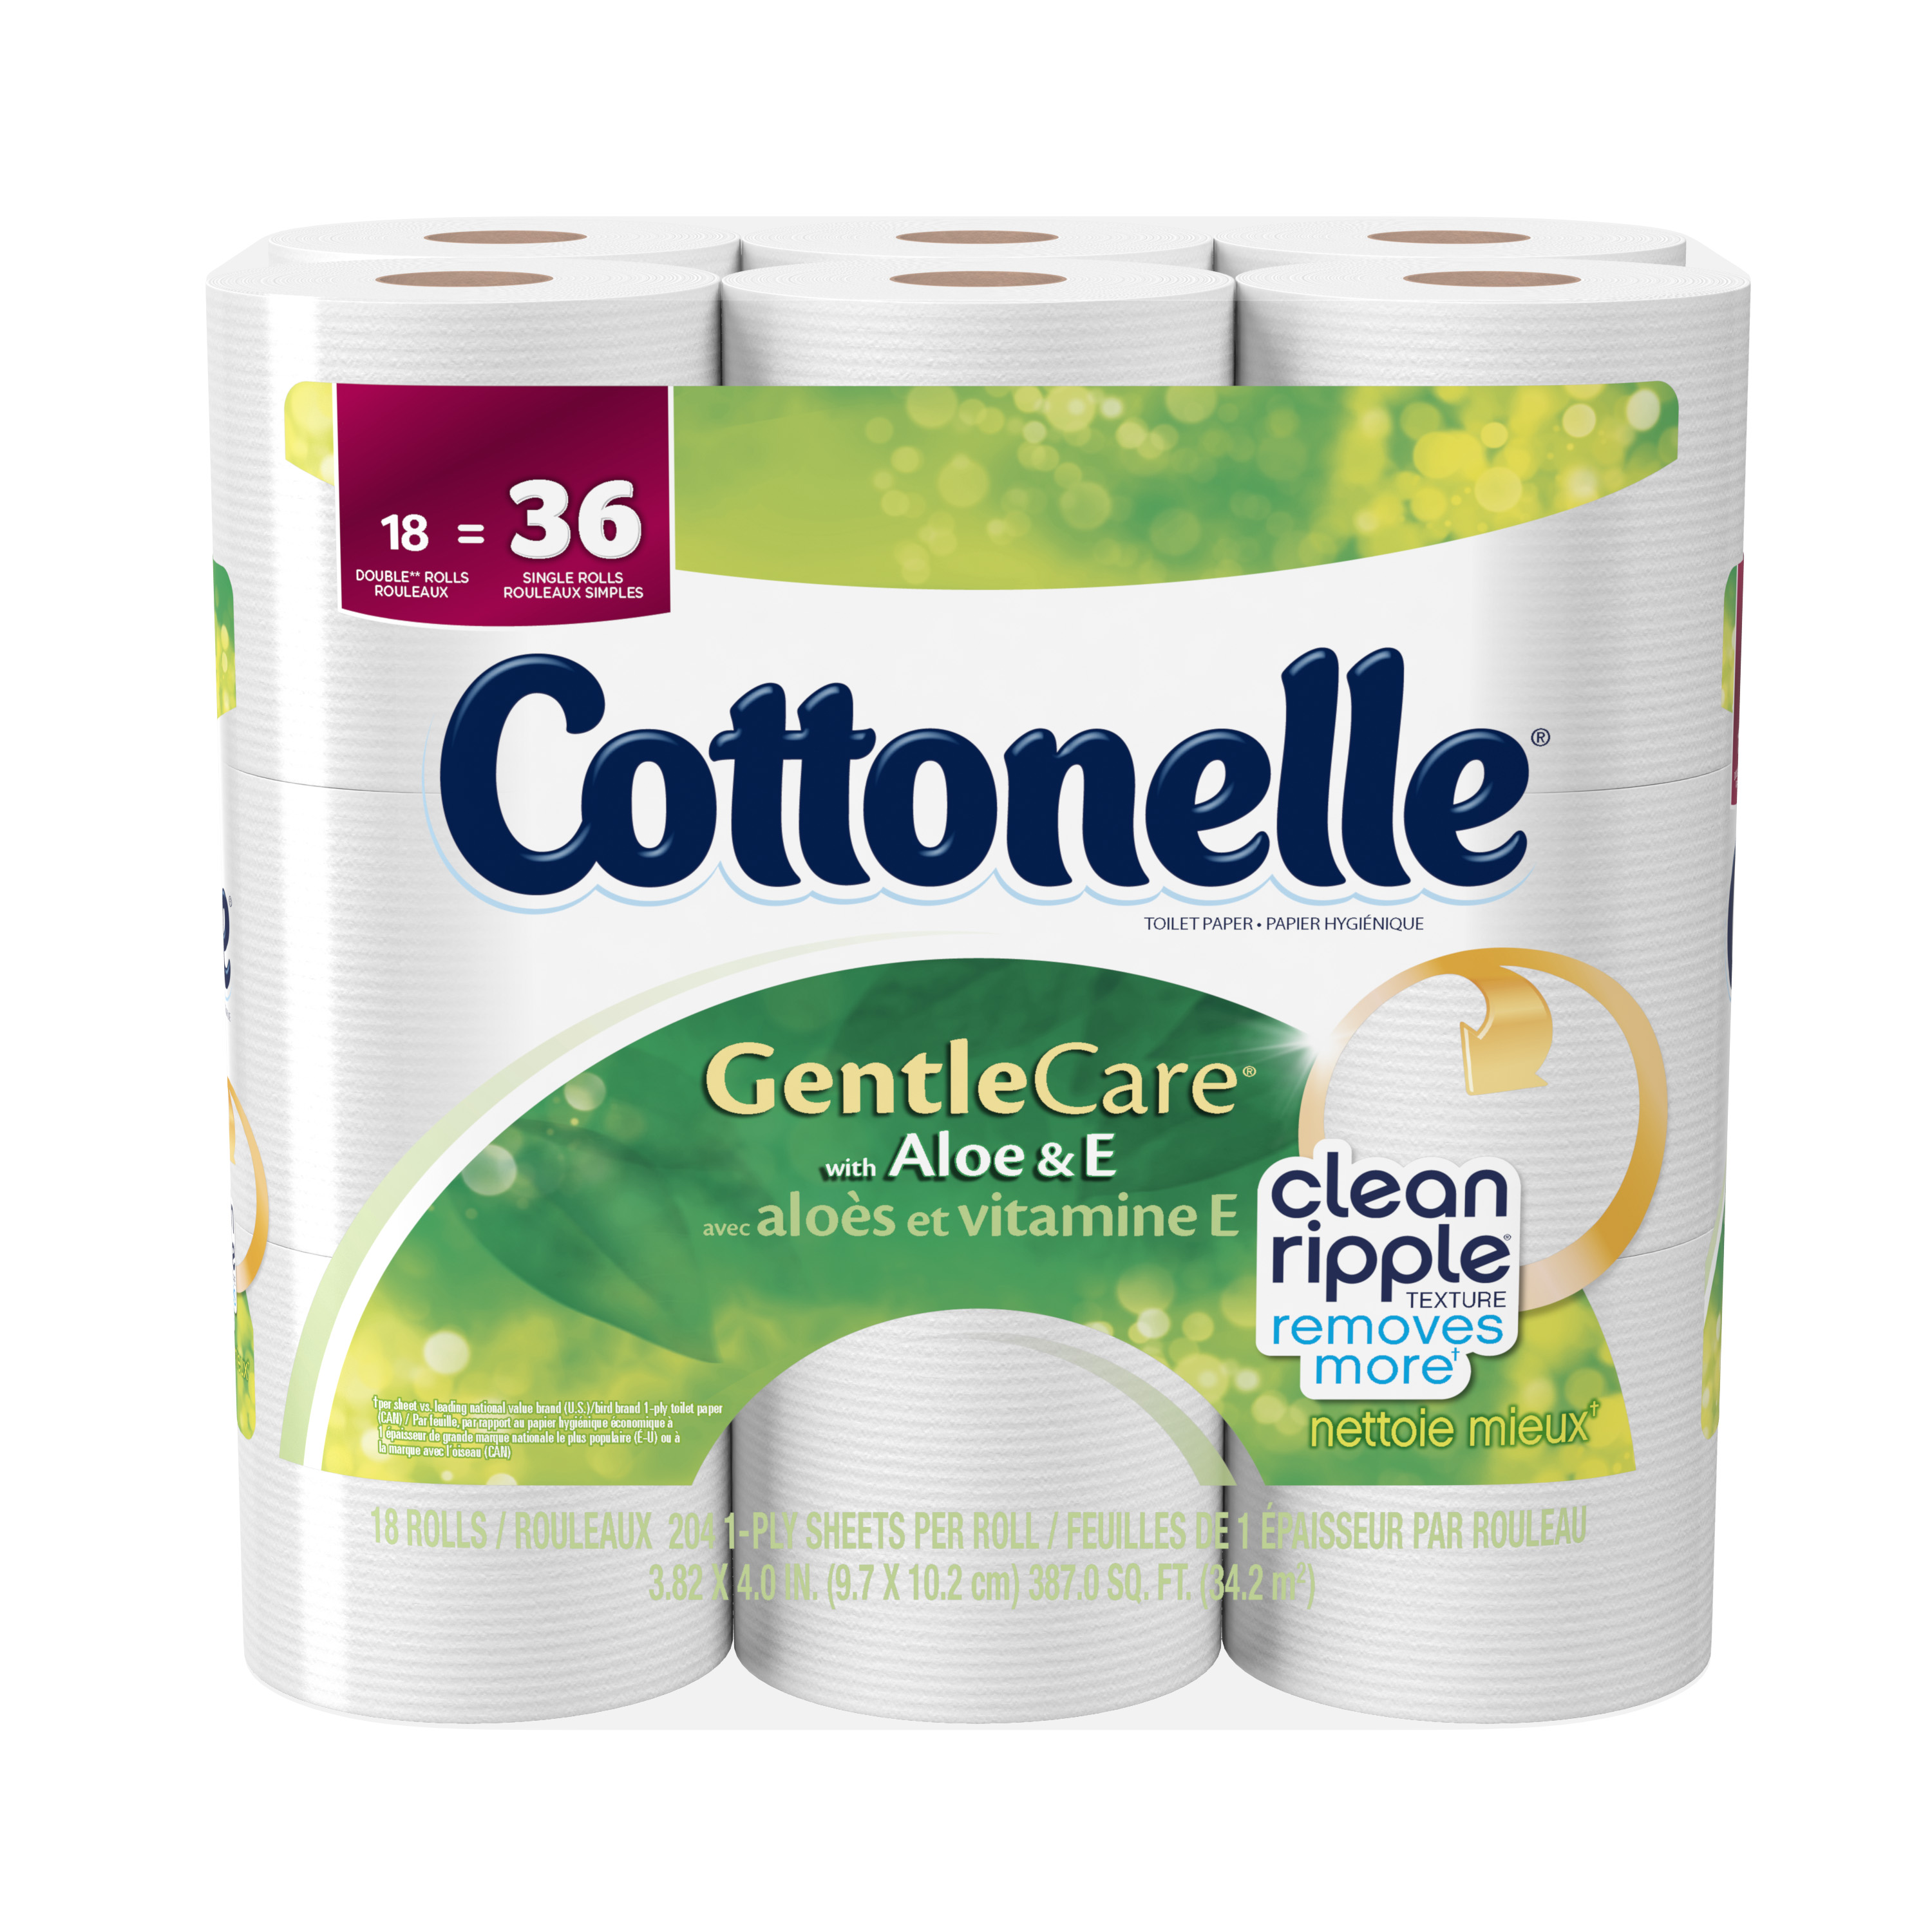 Cottonelle Toilet Paper, Gentle Care, 18 Double Rolls